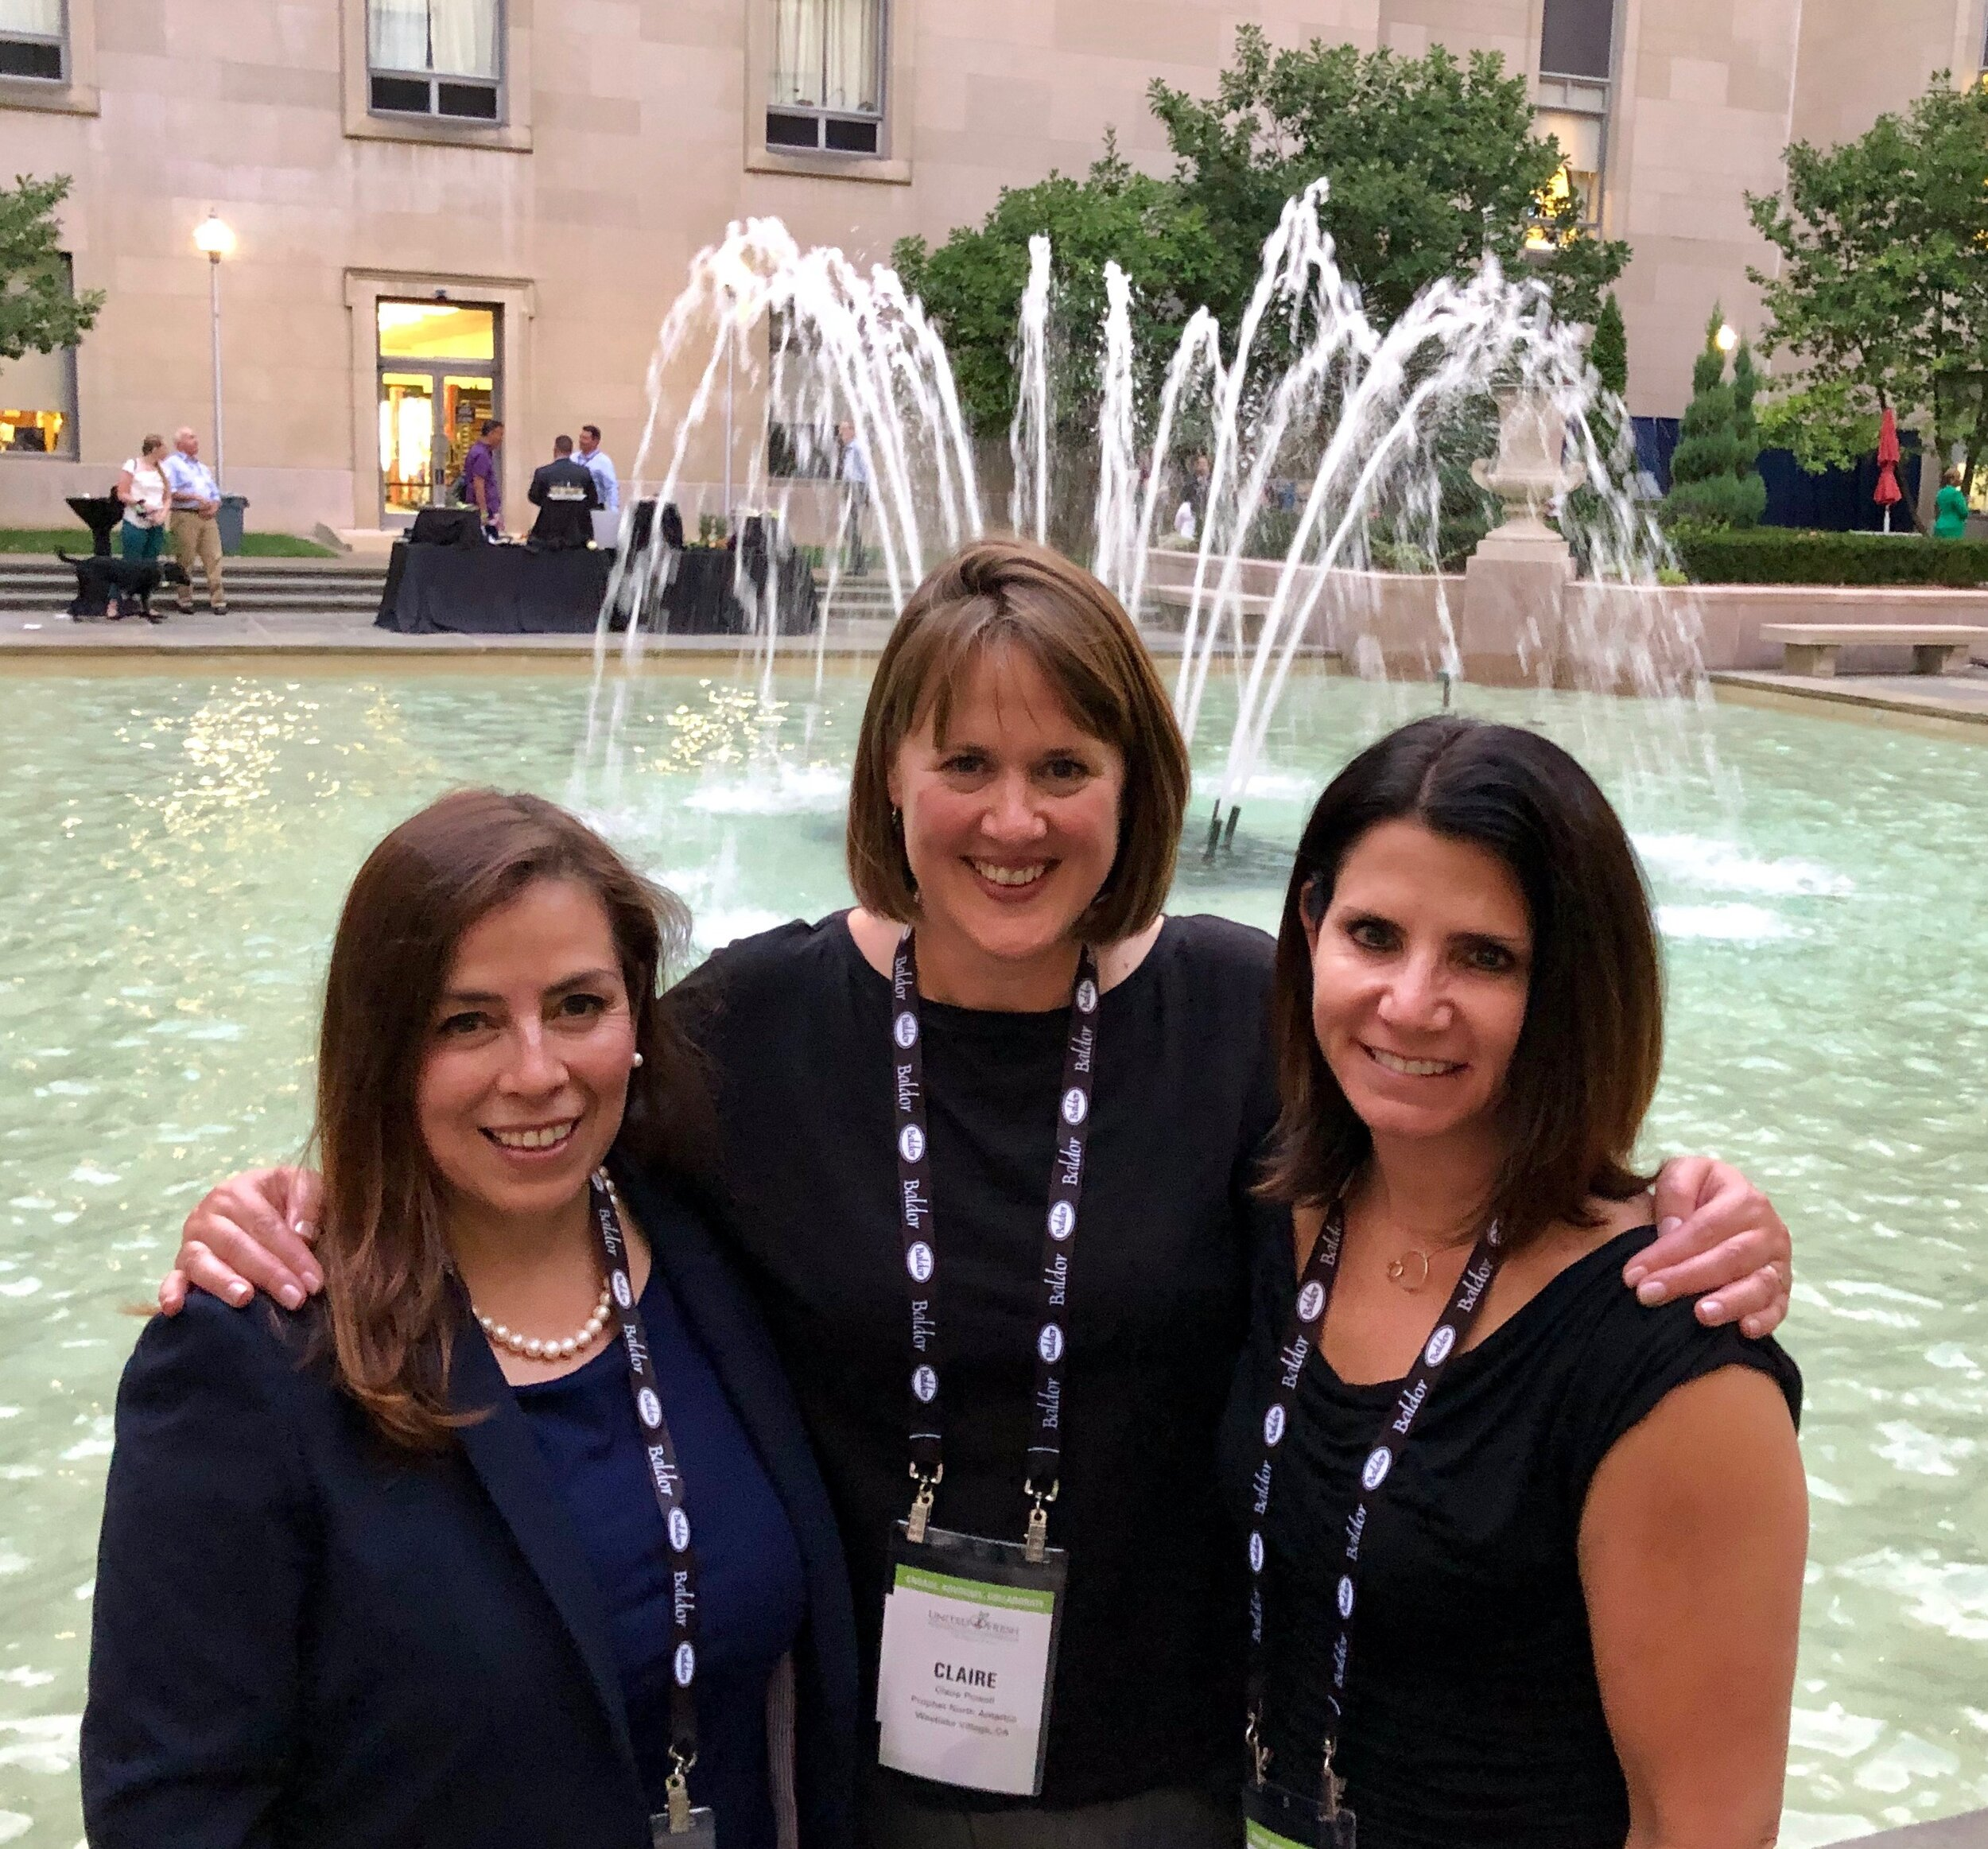 Marianna Solorio - Director of Operational Food Safety, Regulatory & Social Compliance – Driscoll's,  Claire Powell and Julie DeWolf - Director of Retail Marketing - Sunkist Growers